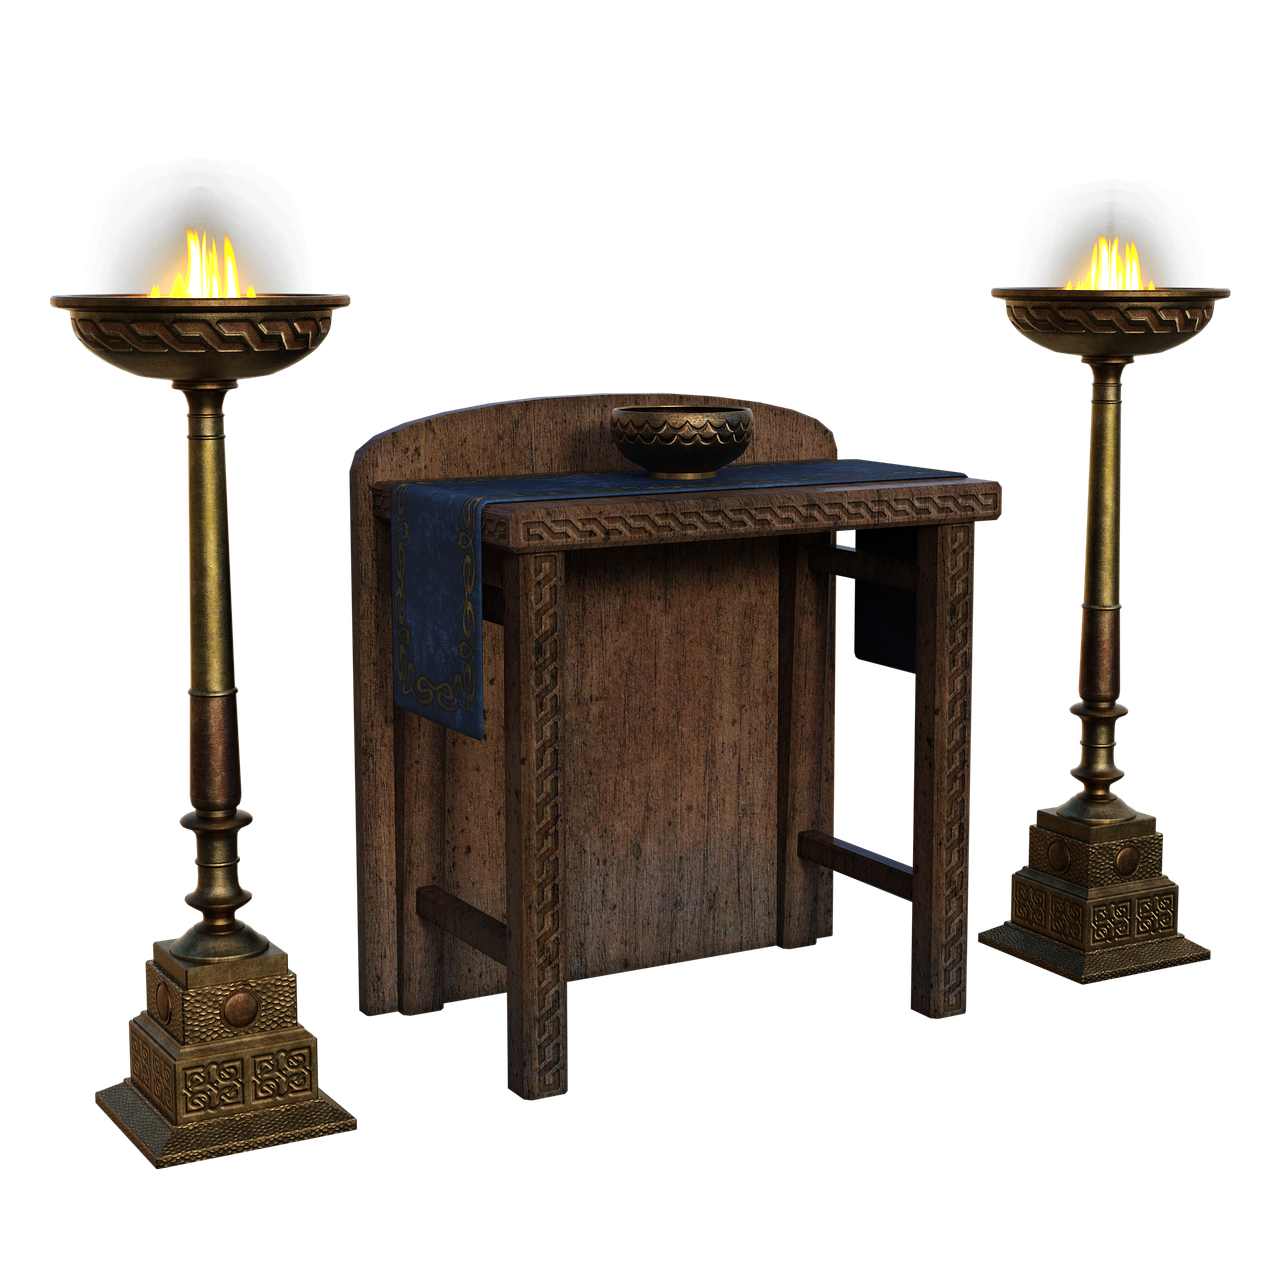 Alter Table Fire - Free image on Pixabay